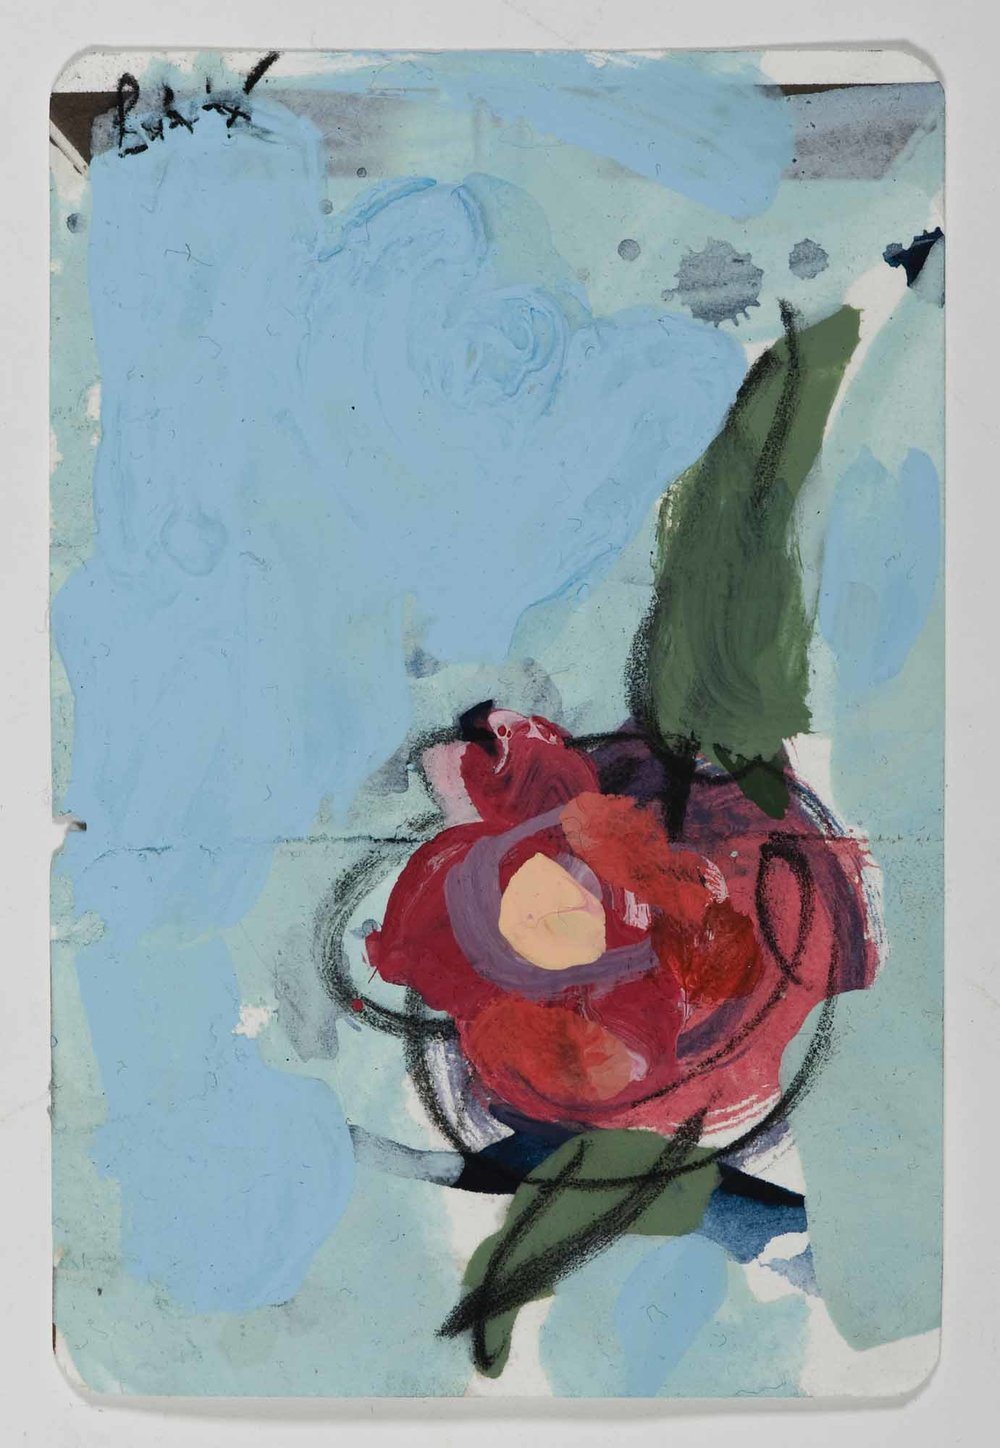 Matthew Bax,  Sample Calm & Collected , 2012, acrylic, charcoal, pencil, wax crayon on paper, 15 x 10cm